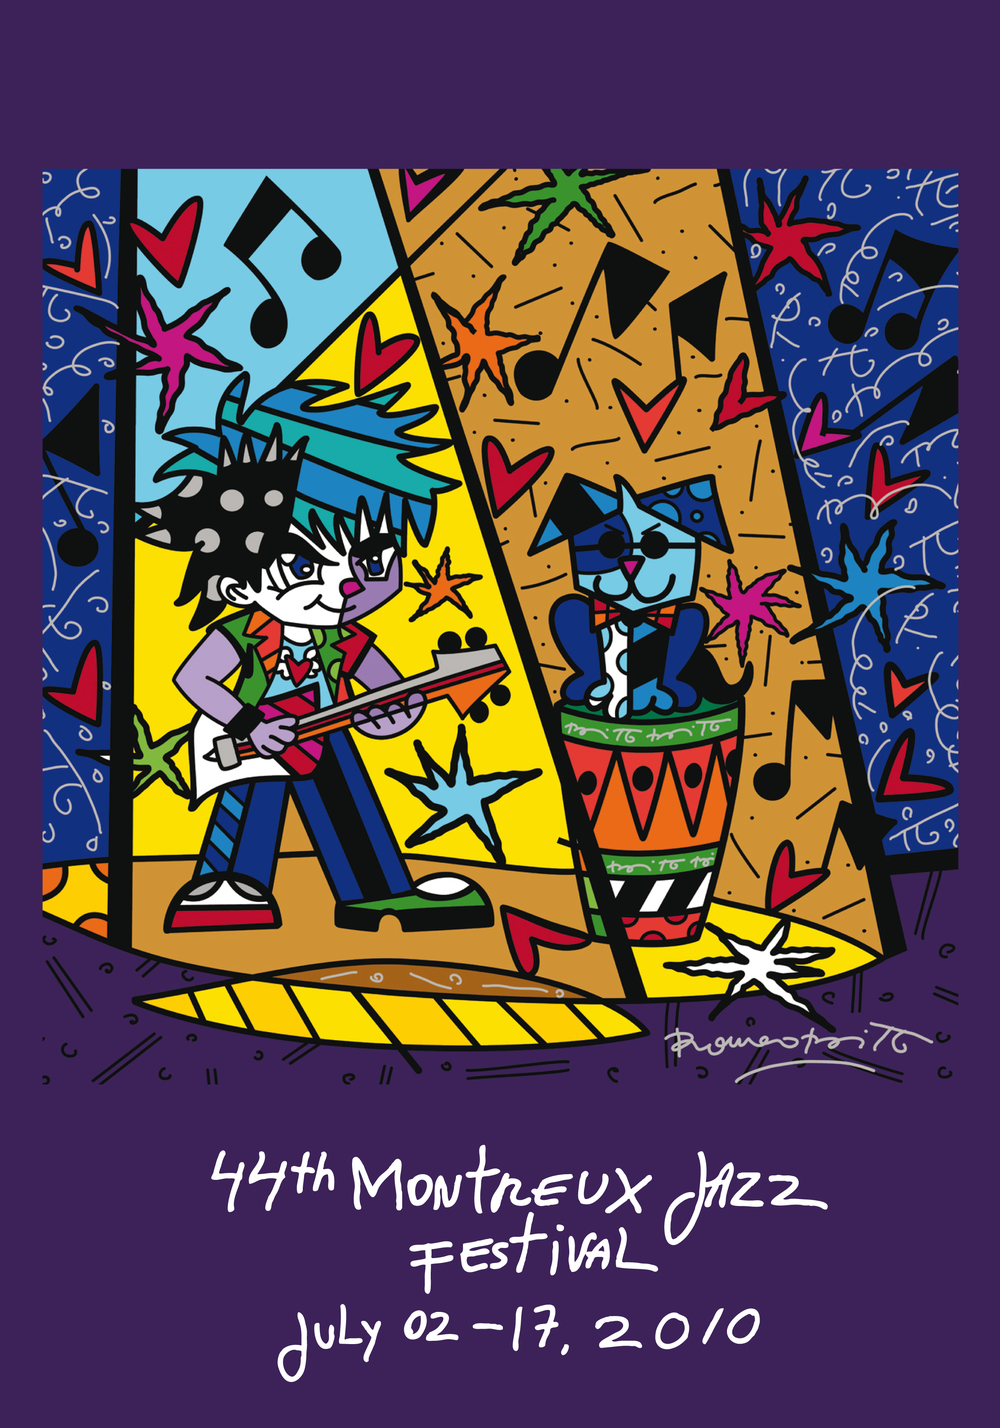 Montreux Jazz Festival Poster 2010 by Romero Britto